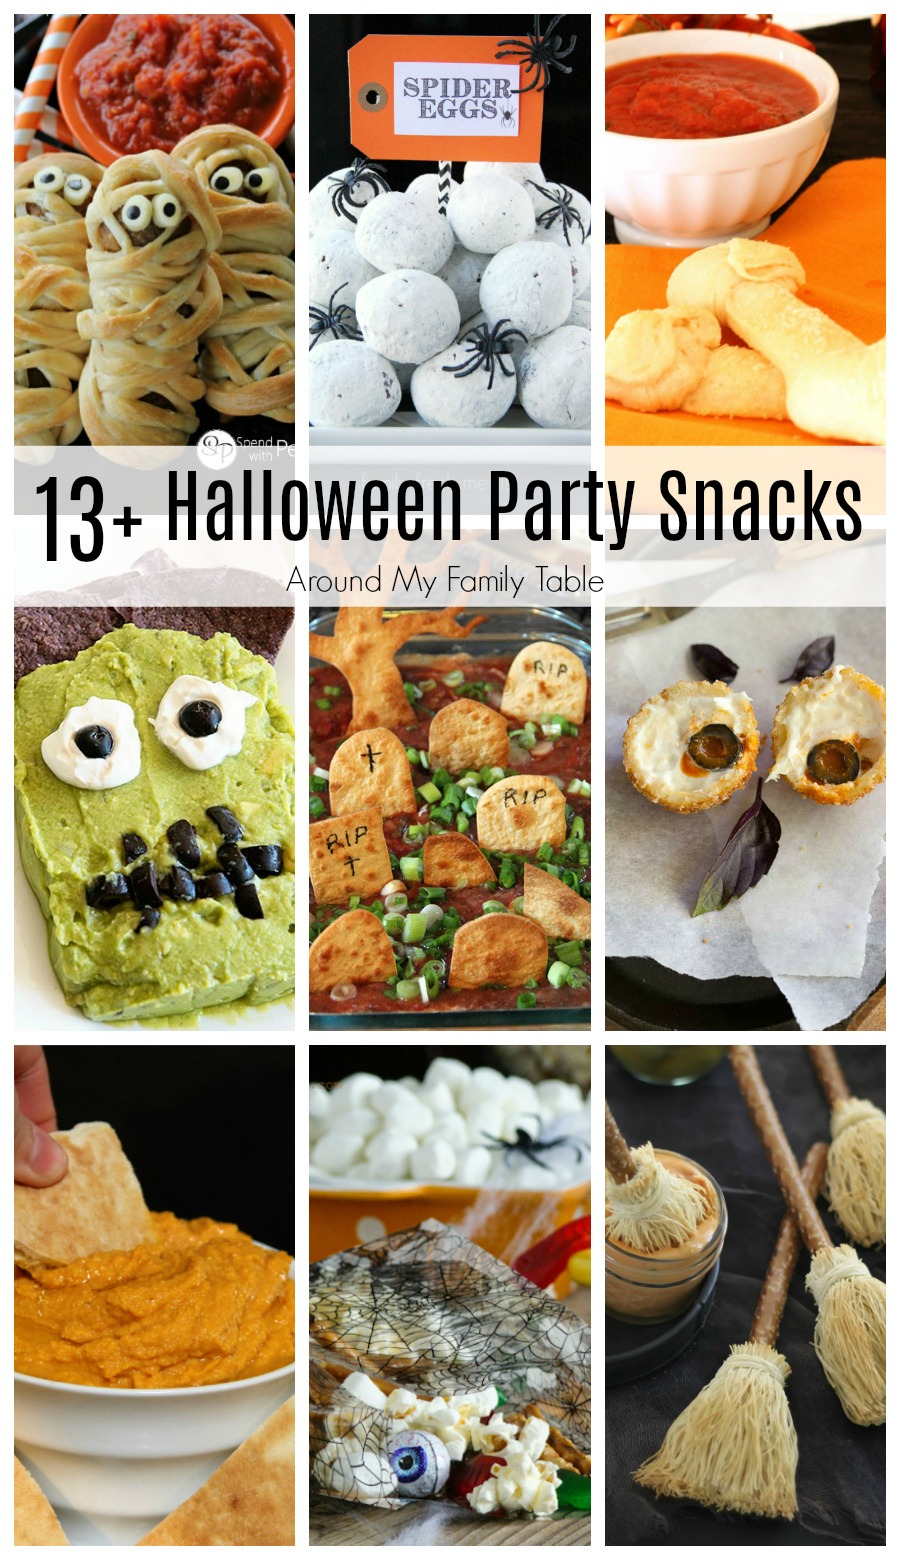 Are you planning a Halloween party or a playdate for the kids this year?  It's the perfect time to stir up some fun with these 13 incredible and crowd-pleasing Halloween Party Snacks that have loads of flavor!